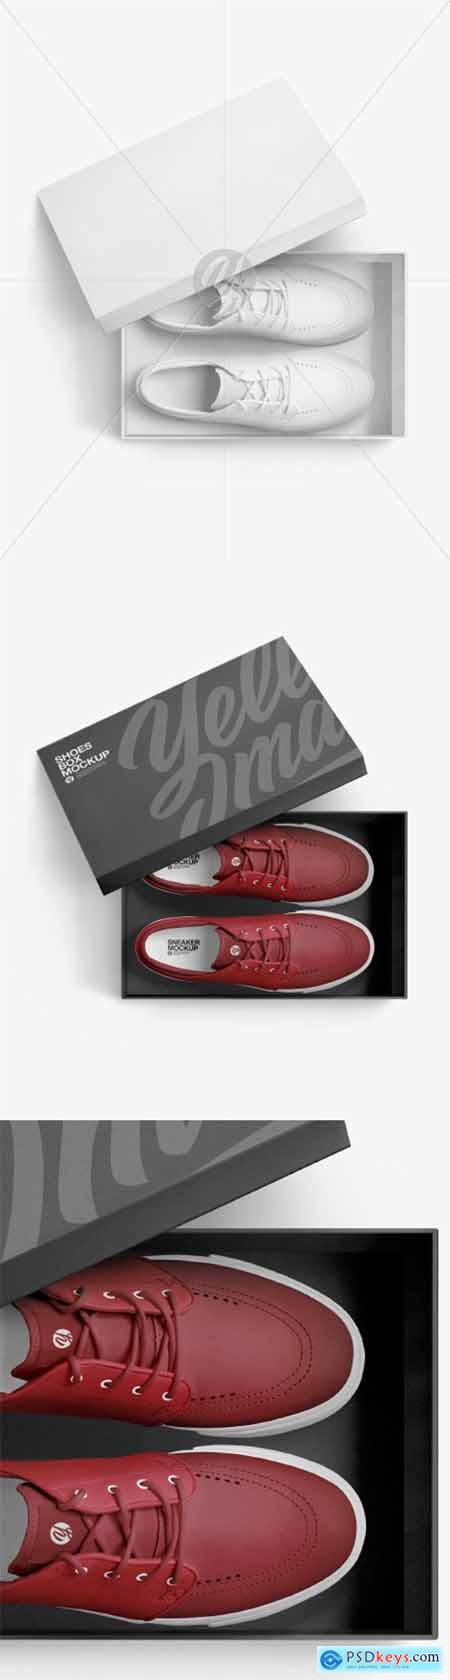 Sneakers Shoes w- Box Mockup 60996